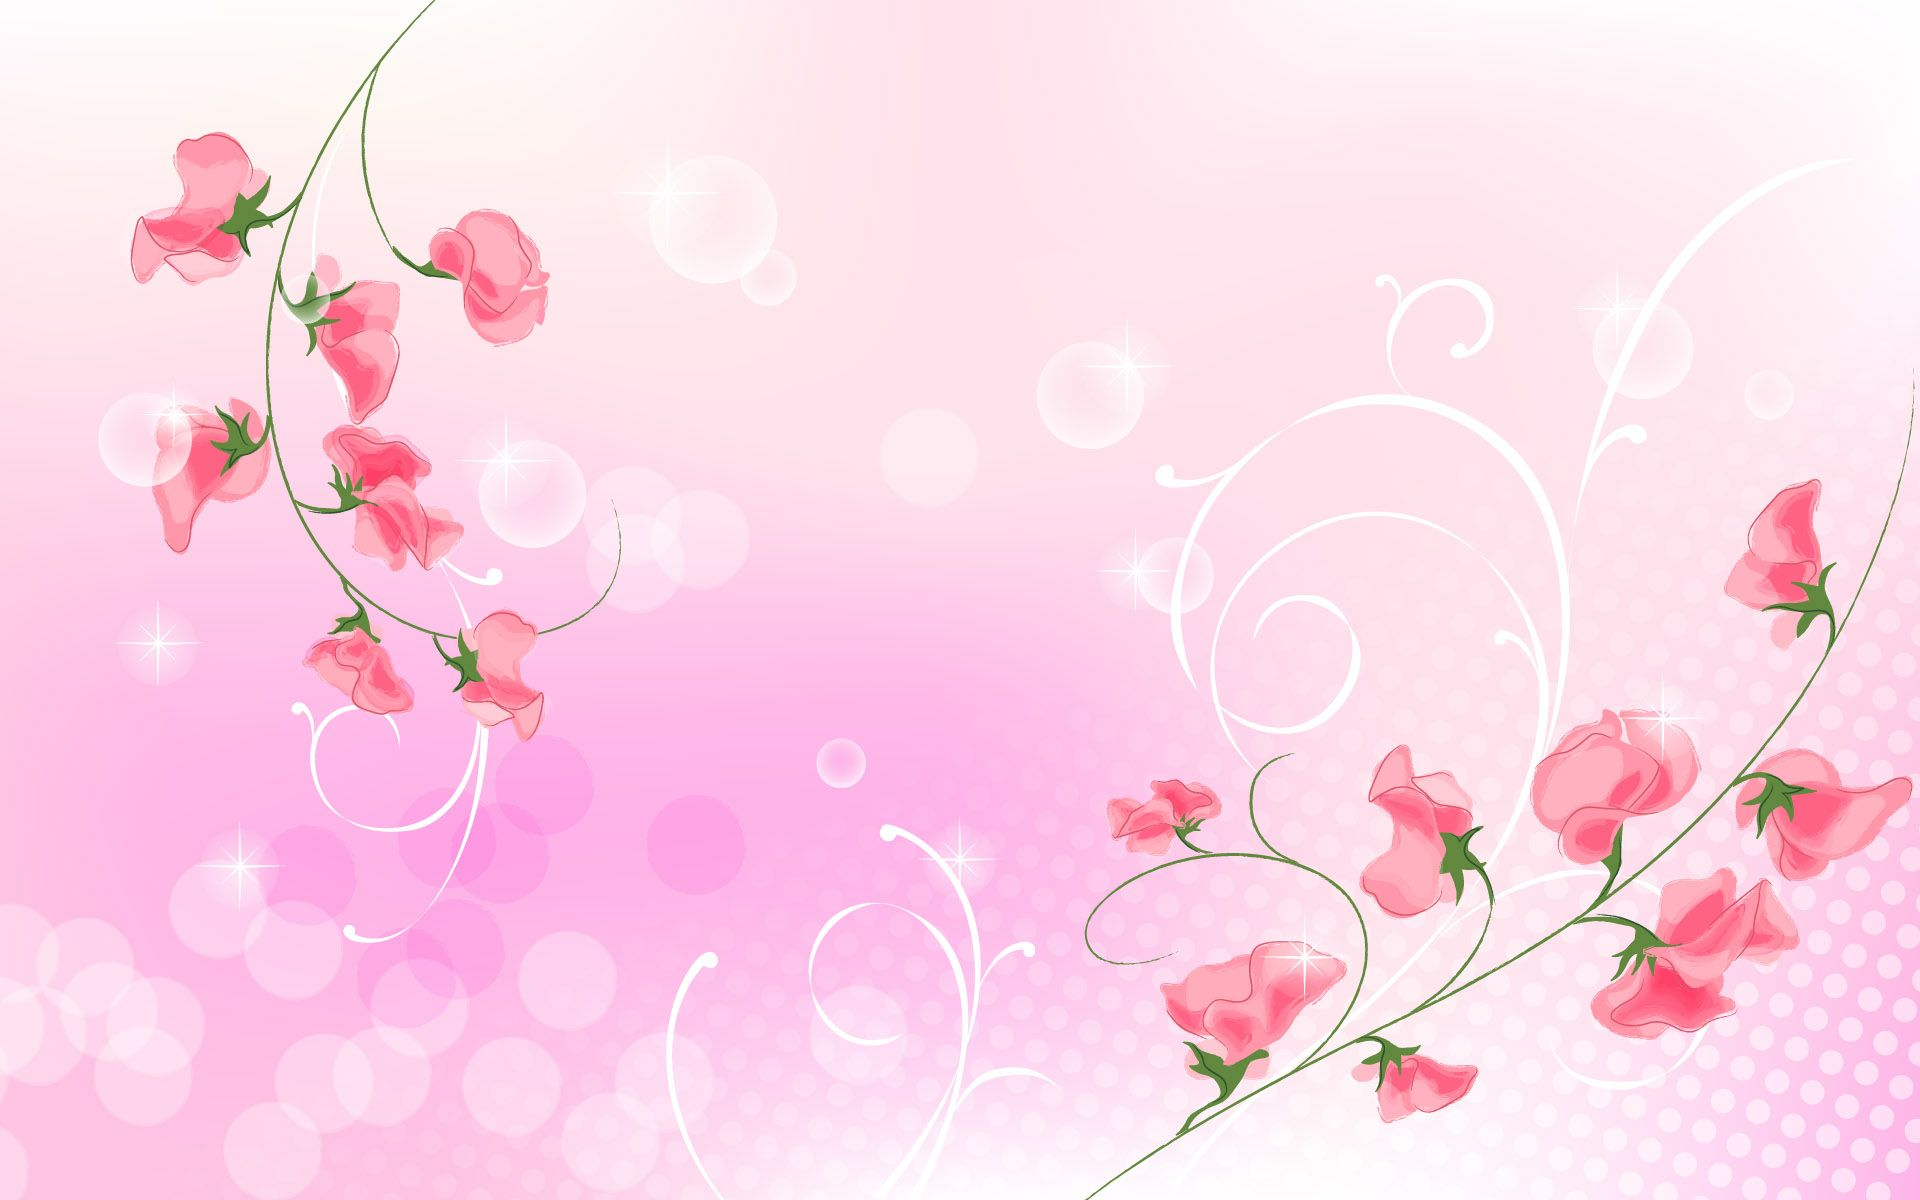 floral backgrounds Flower and Light Pink Background